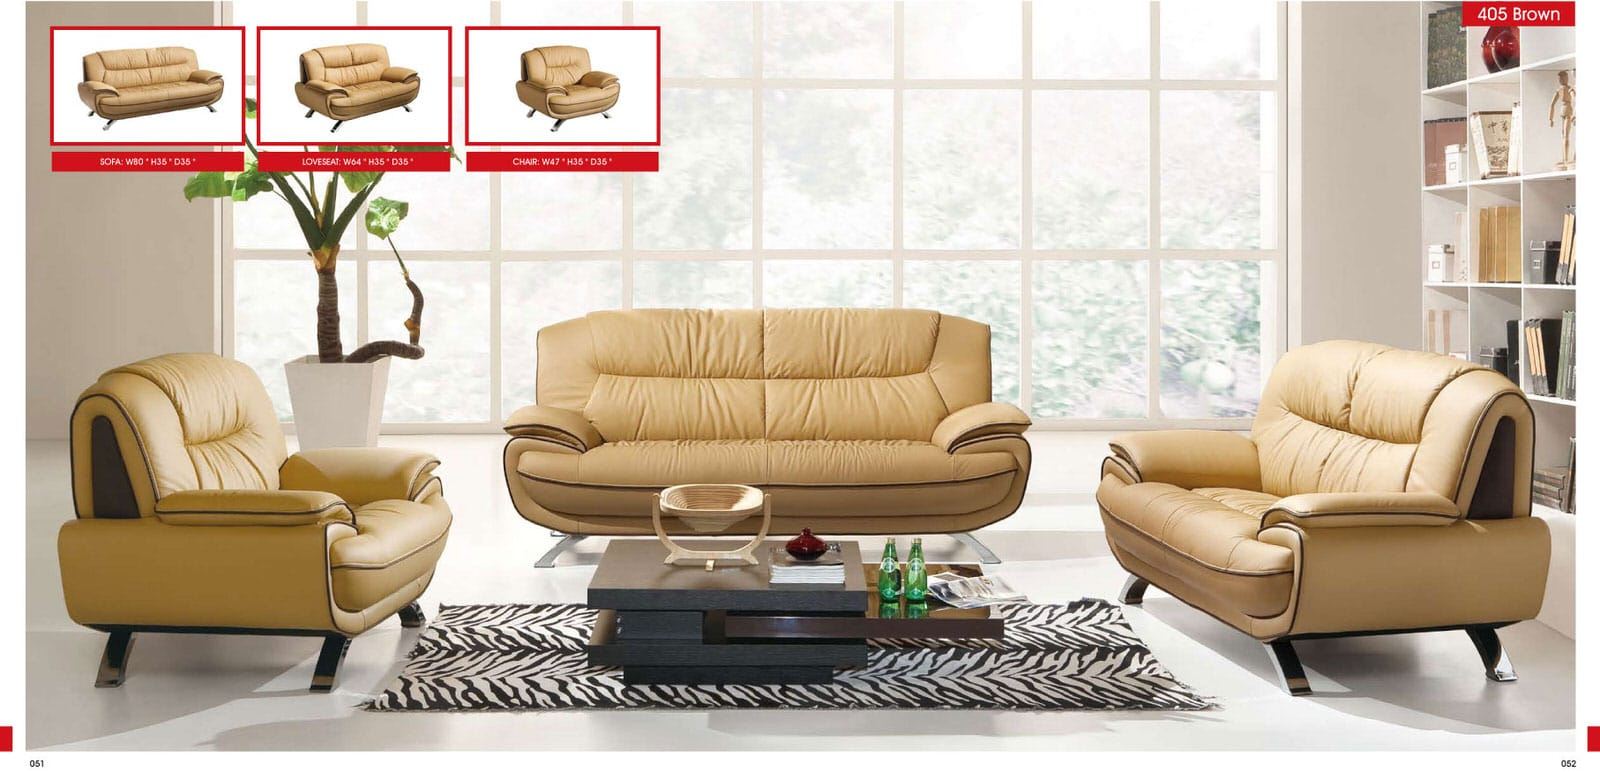 405 brown leather sofa set by esf Living room loveseats